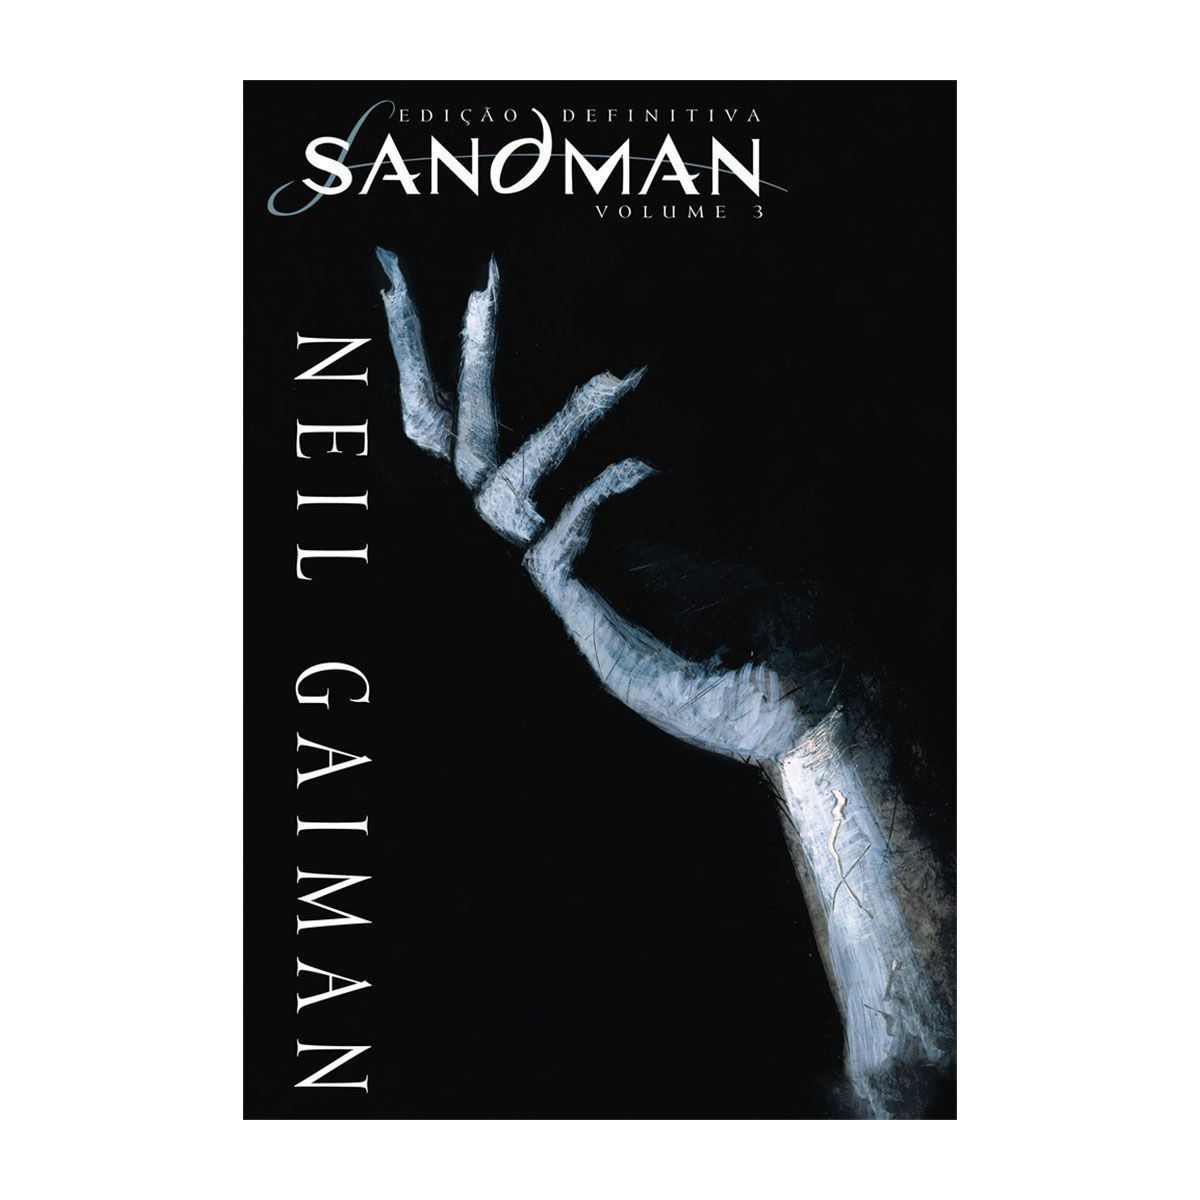 Graphic Novel Sandman Edição Definitiva Vol. 3